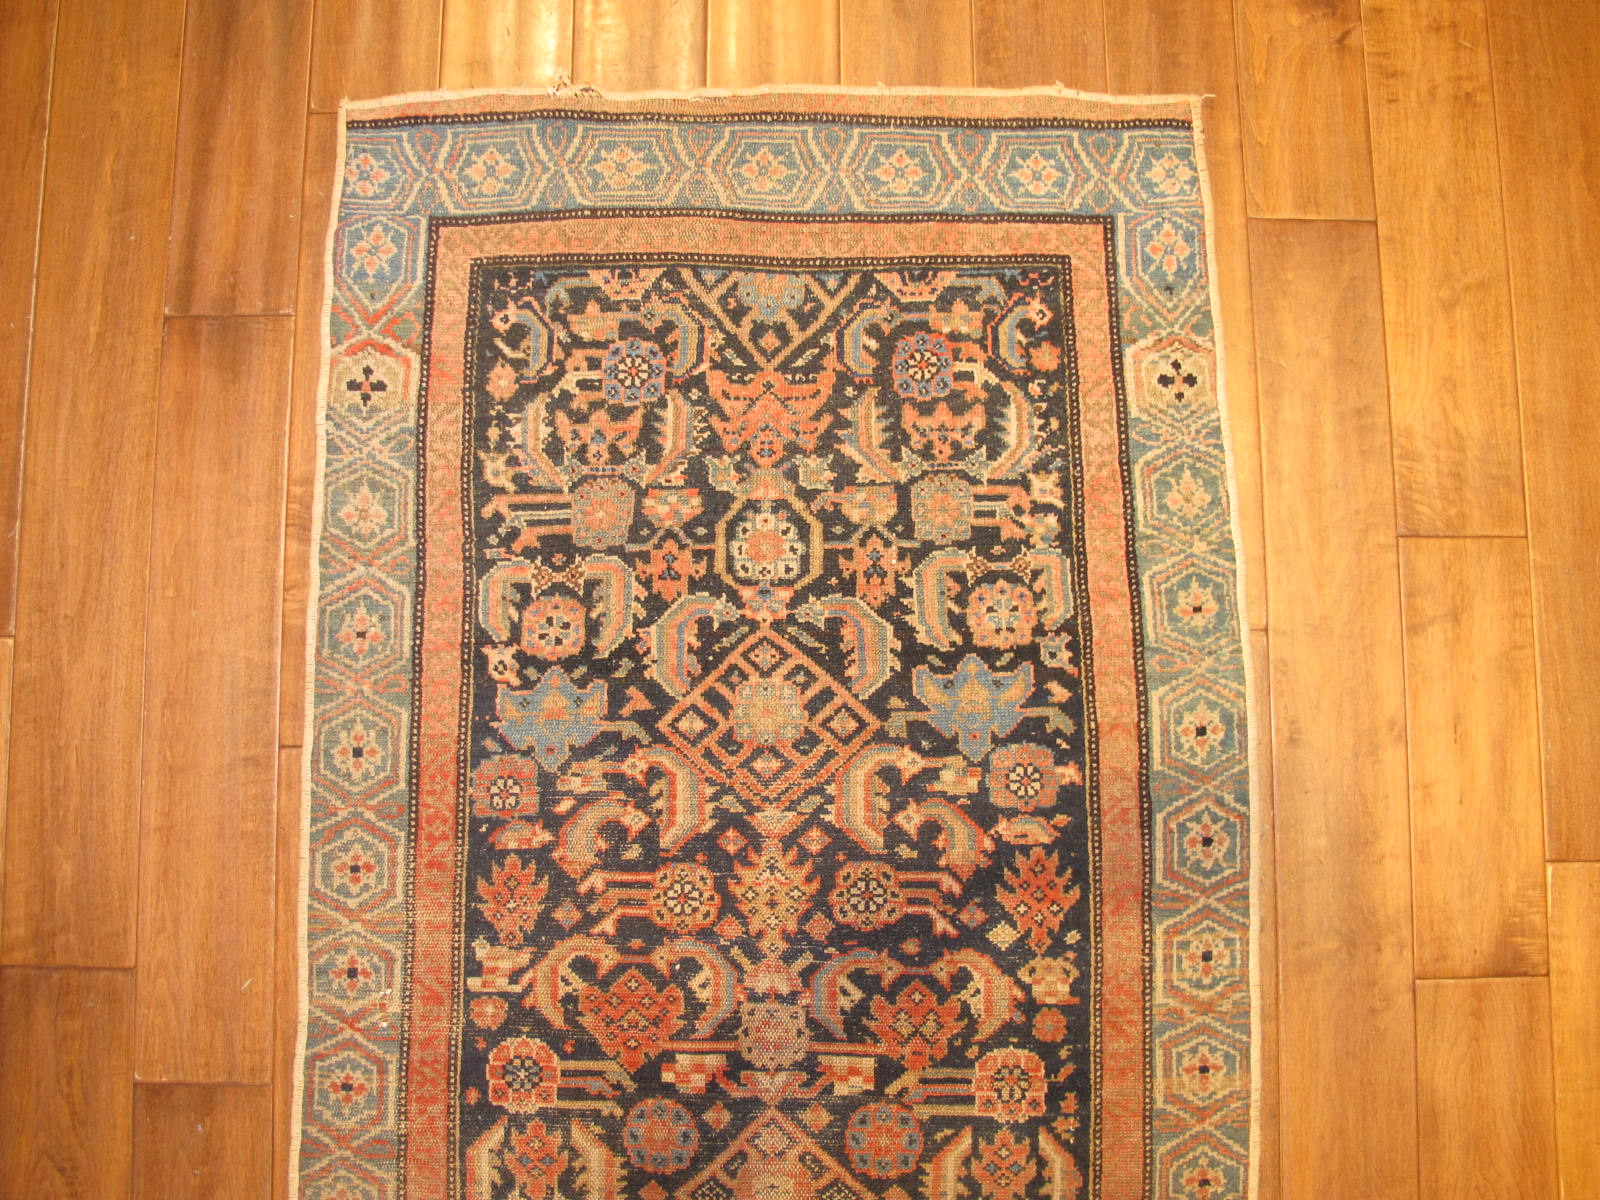 13099 antique persian malayer runner 2,9 x 10,4 (2)